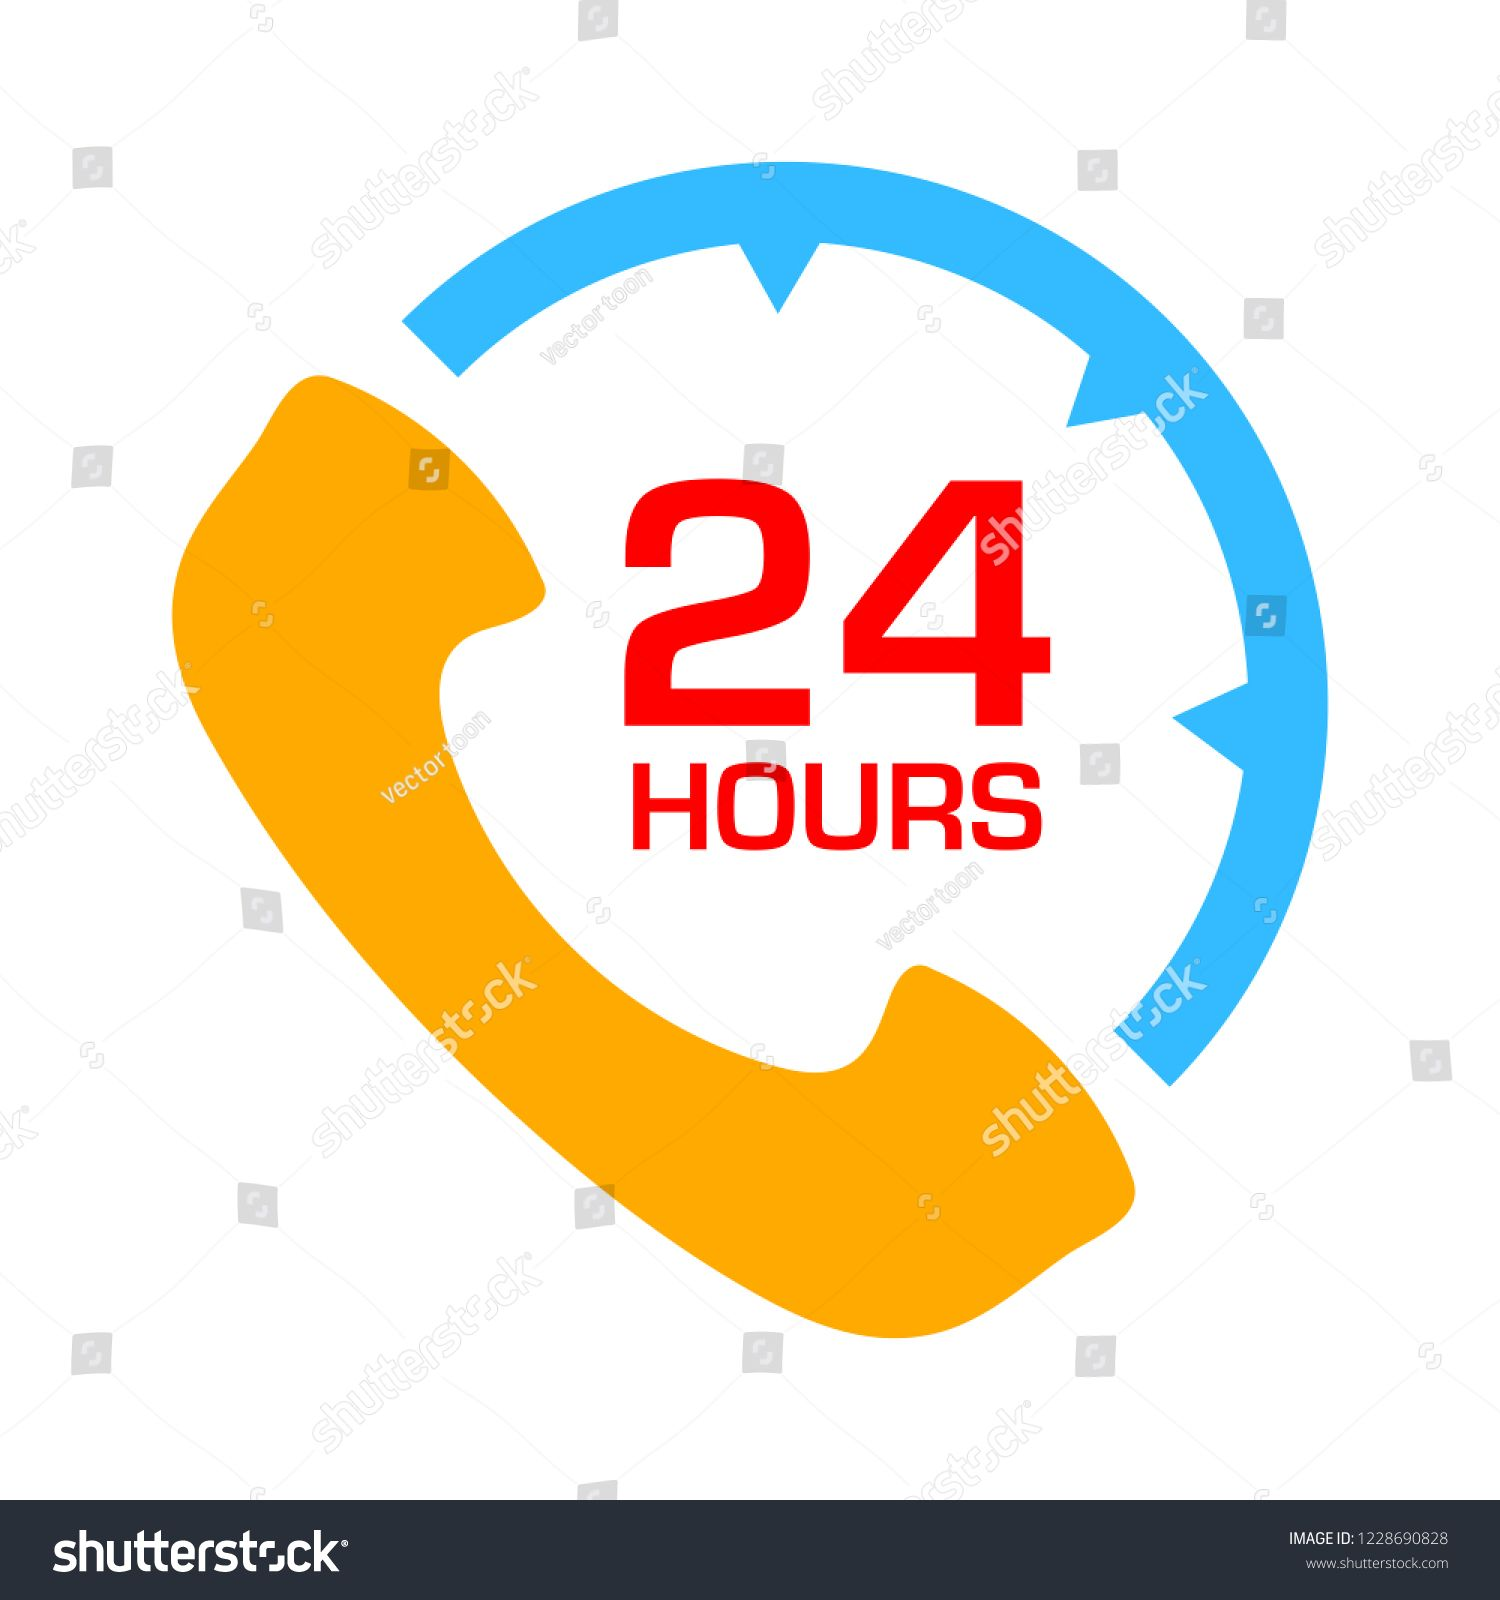 24 7 Customer Service Icon Customer Support Icon Call Center Icon Service Customer Icon Center Support Icon Business Advertising Design Icon